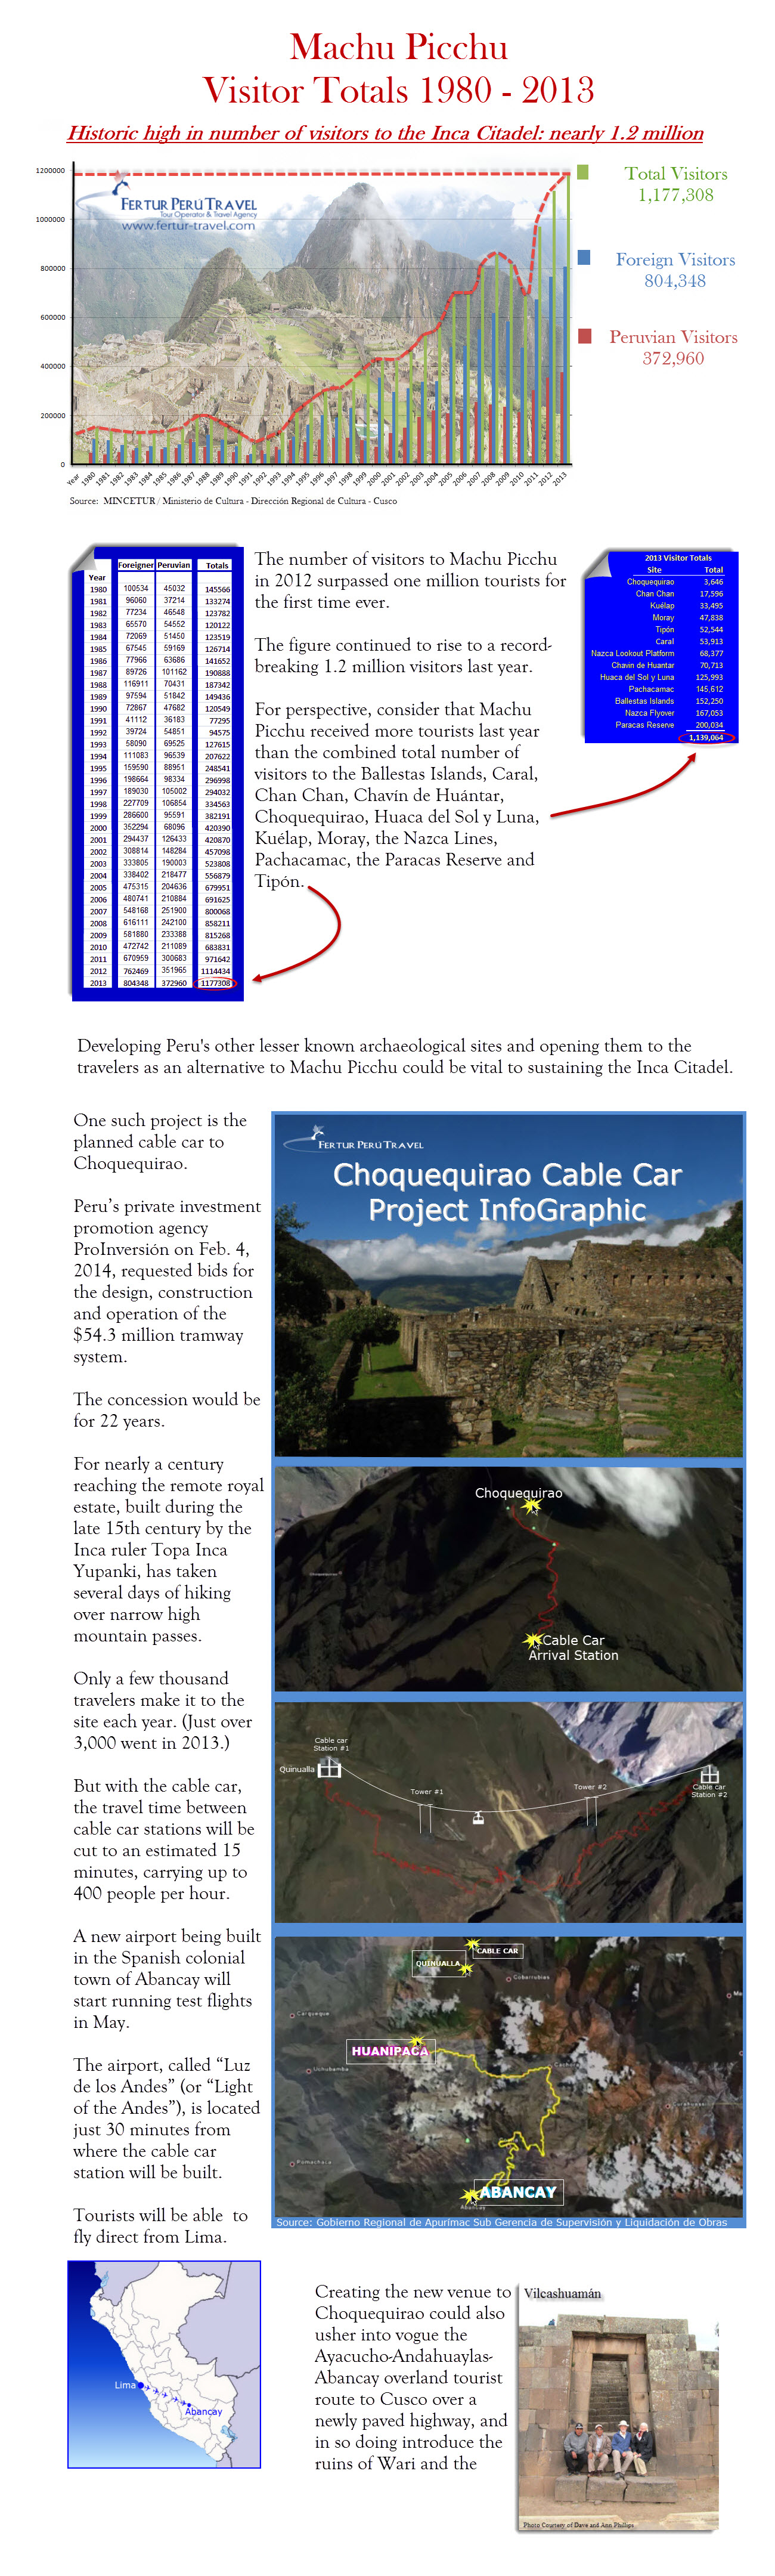 Drastic New Rules Coming For Visitors To Machu Picchu News From - 8 destinations putting a cap on tourist numbers